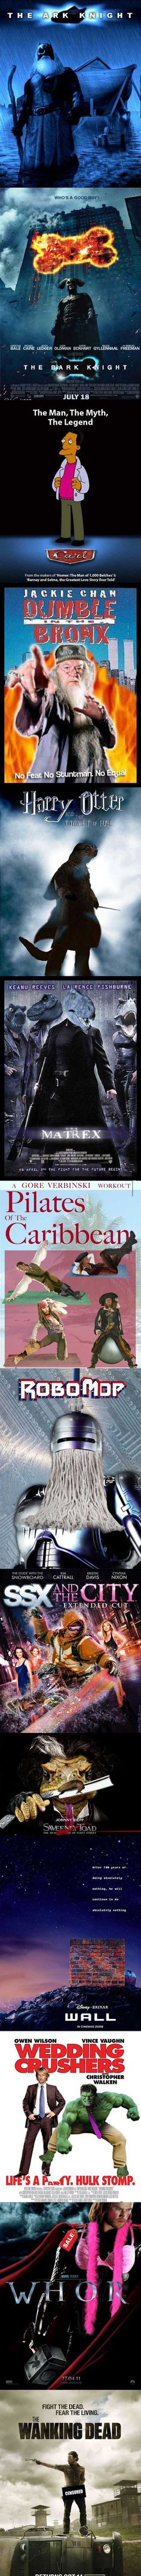 How Changing One Letter Of A Movie Title Can Affect Its Content! (16 Pics) omggggg pilates of the carribean!